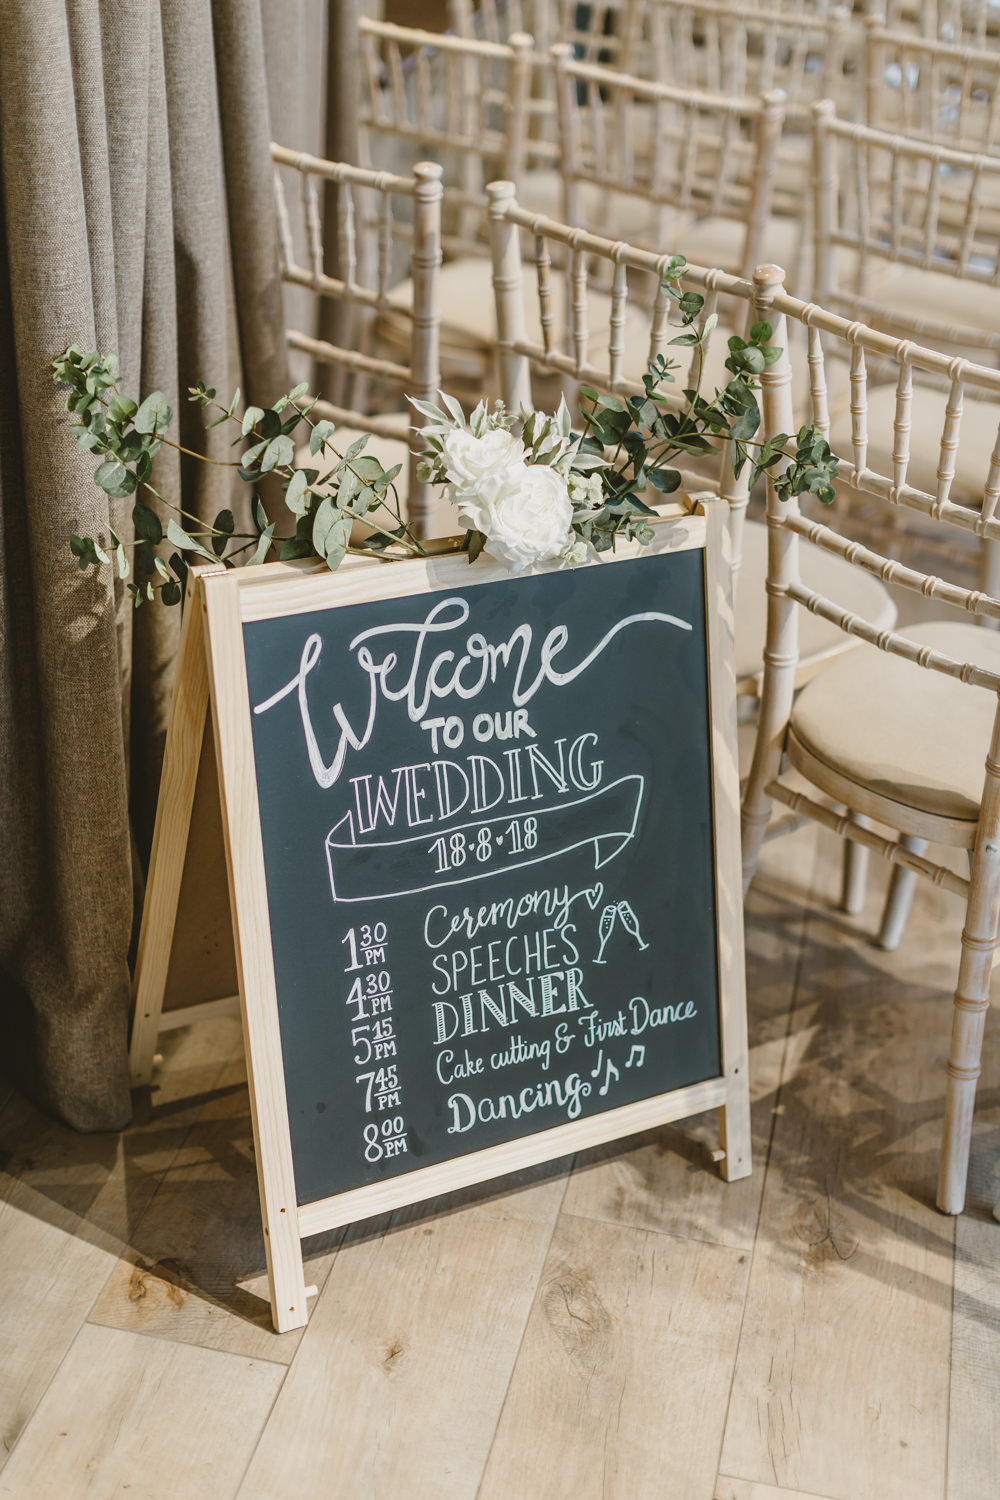 Welcome Sign Chalk Board Calligraphy Flowers GG's Yard Wedding Amy Lou Photography